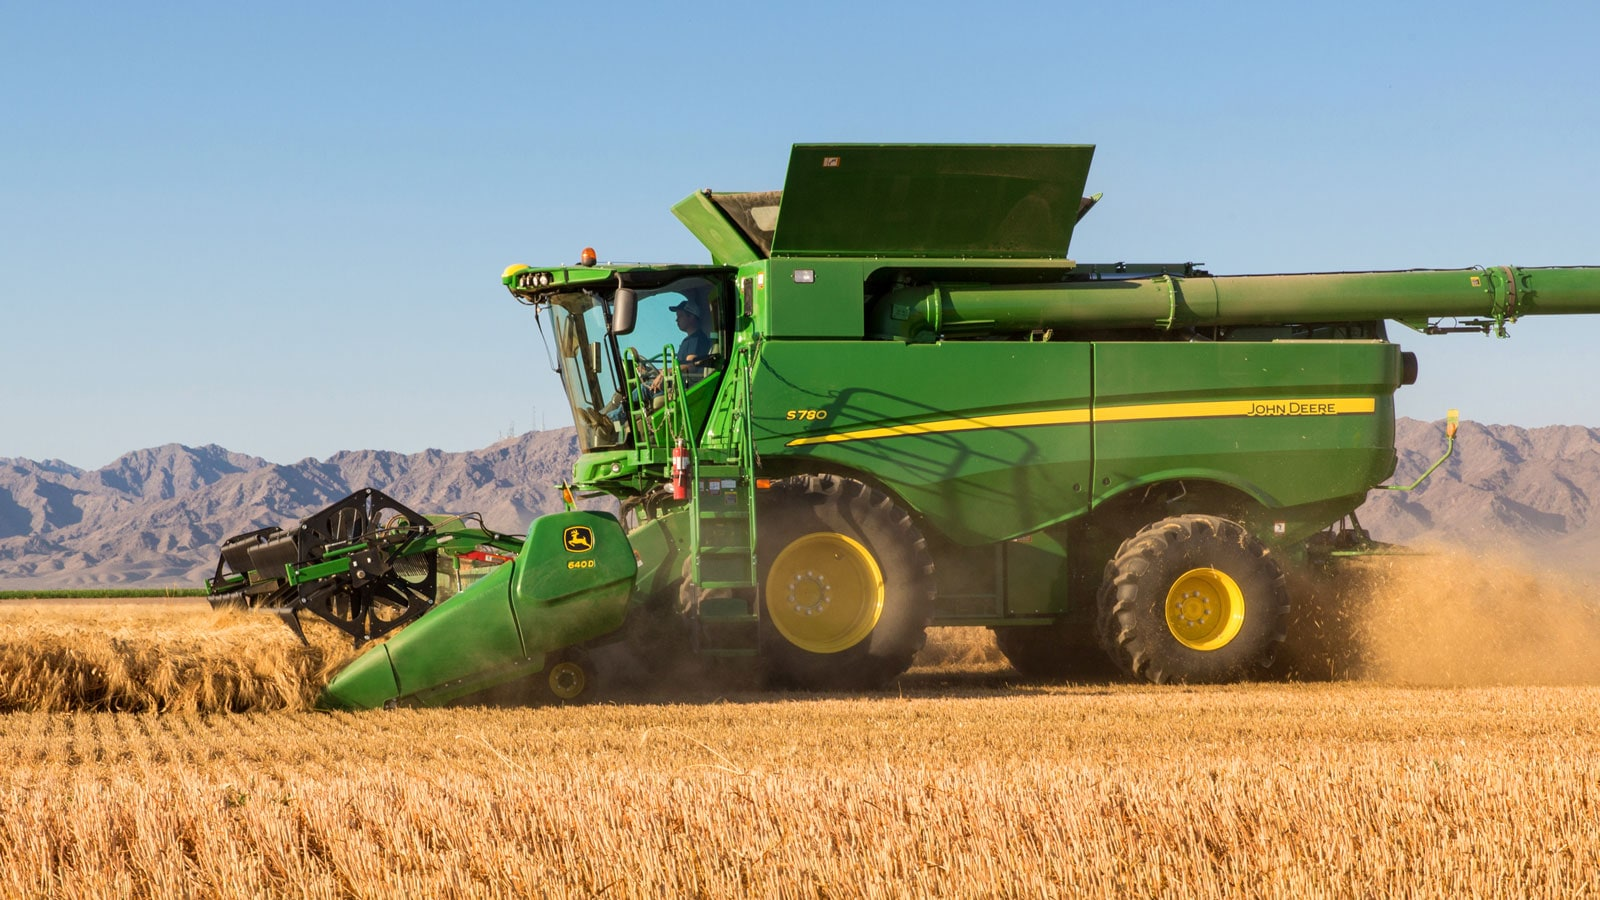 S700 Series Combine in action in a field